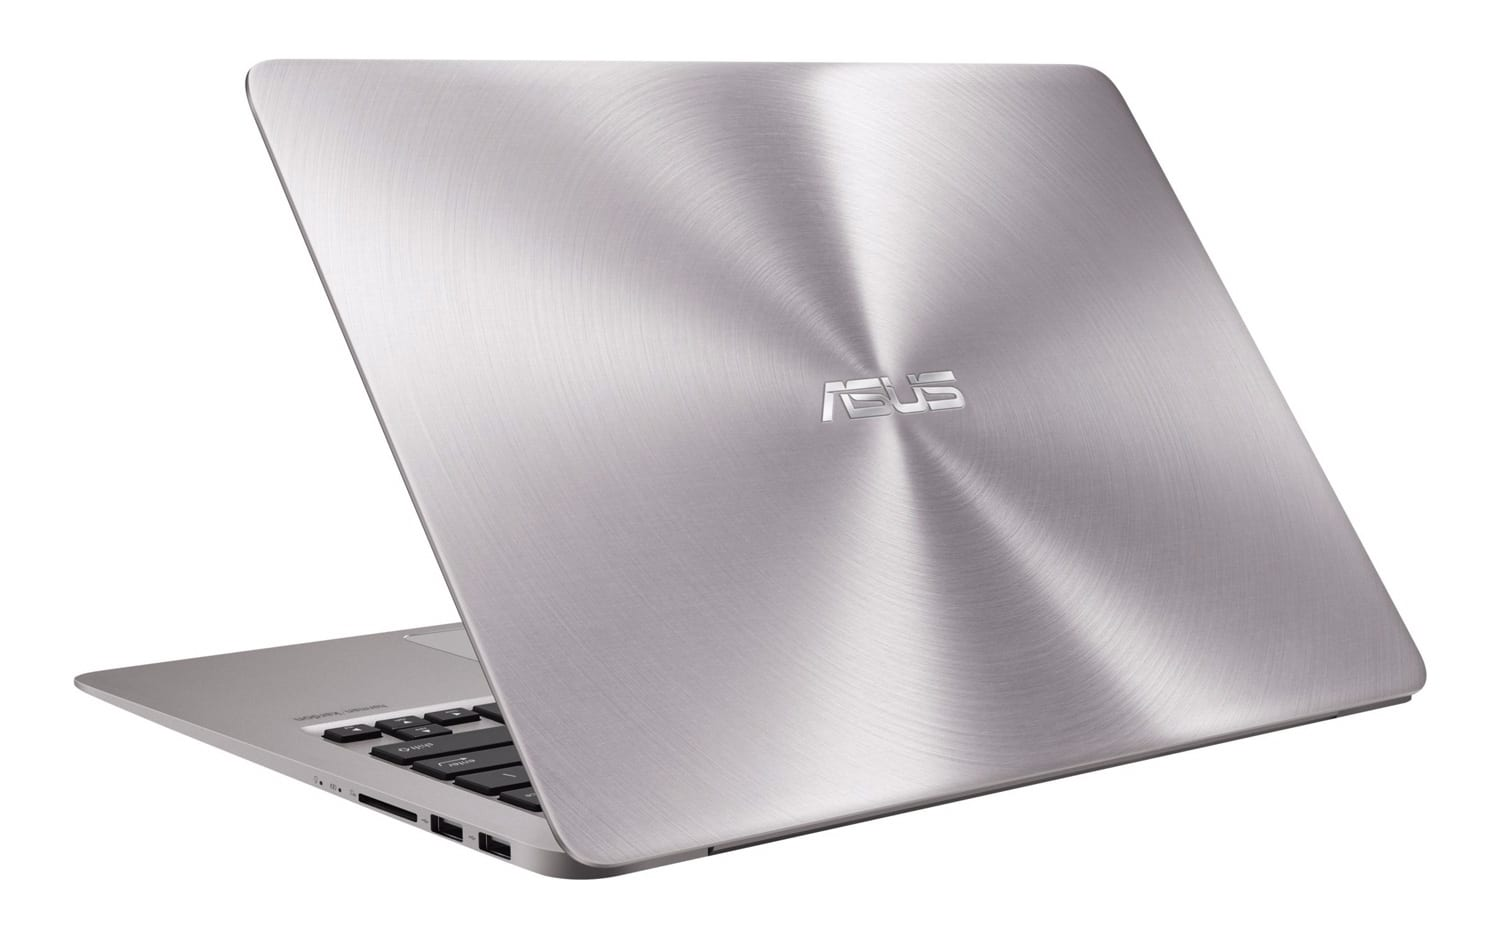 Asus Zenbook UX410UA-GV069T, Ultrabook 14 pouces IPS SSD i7 Kaby Lake 999€